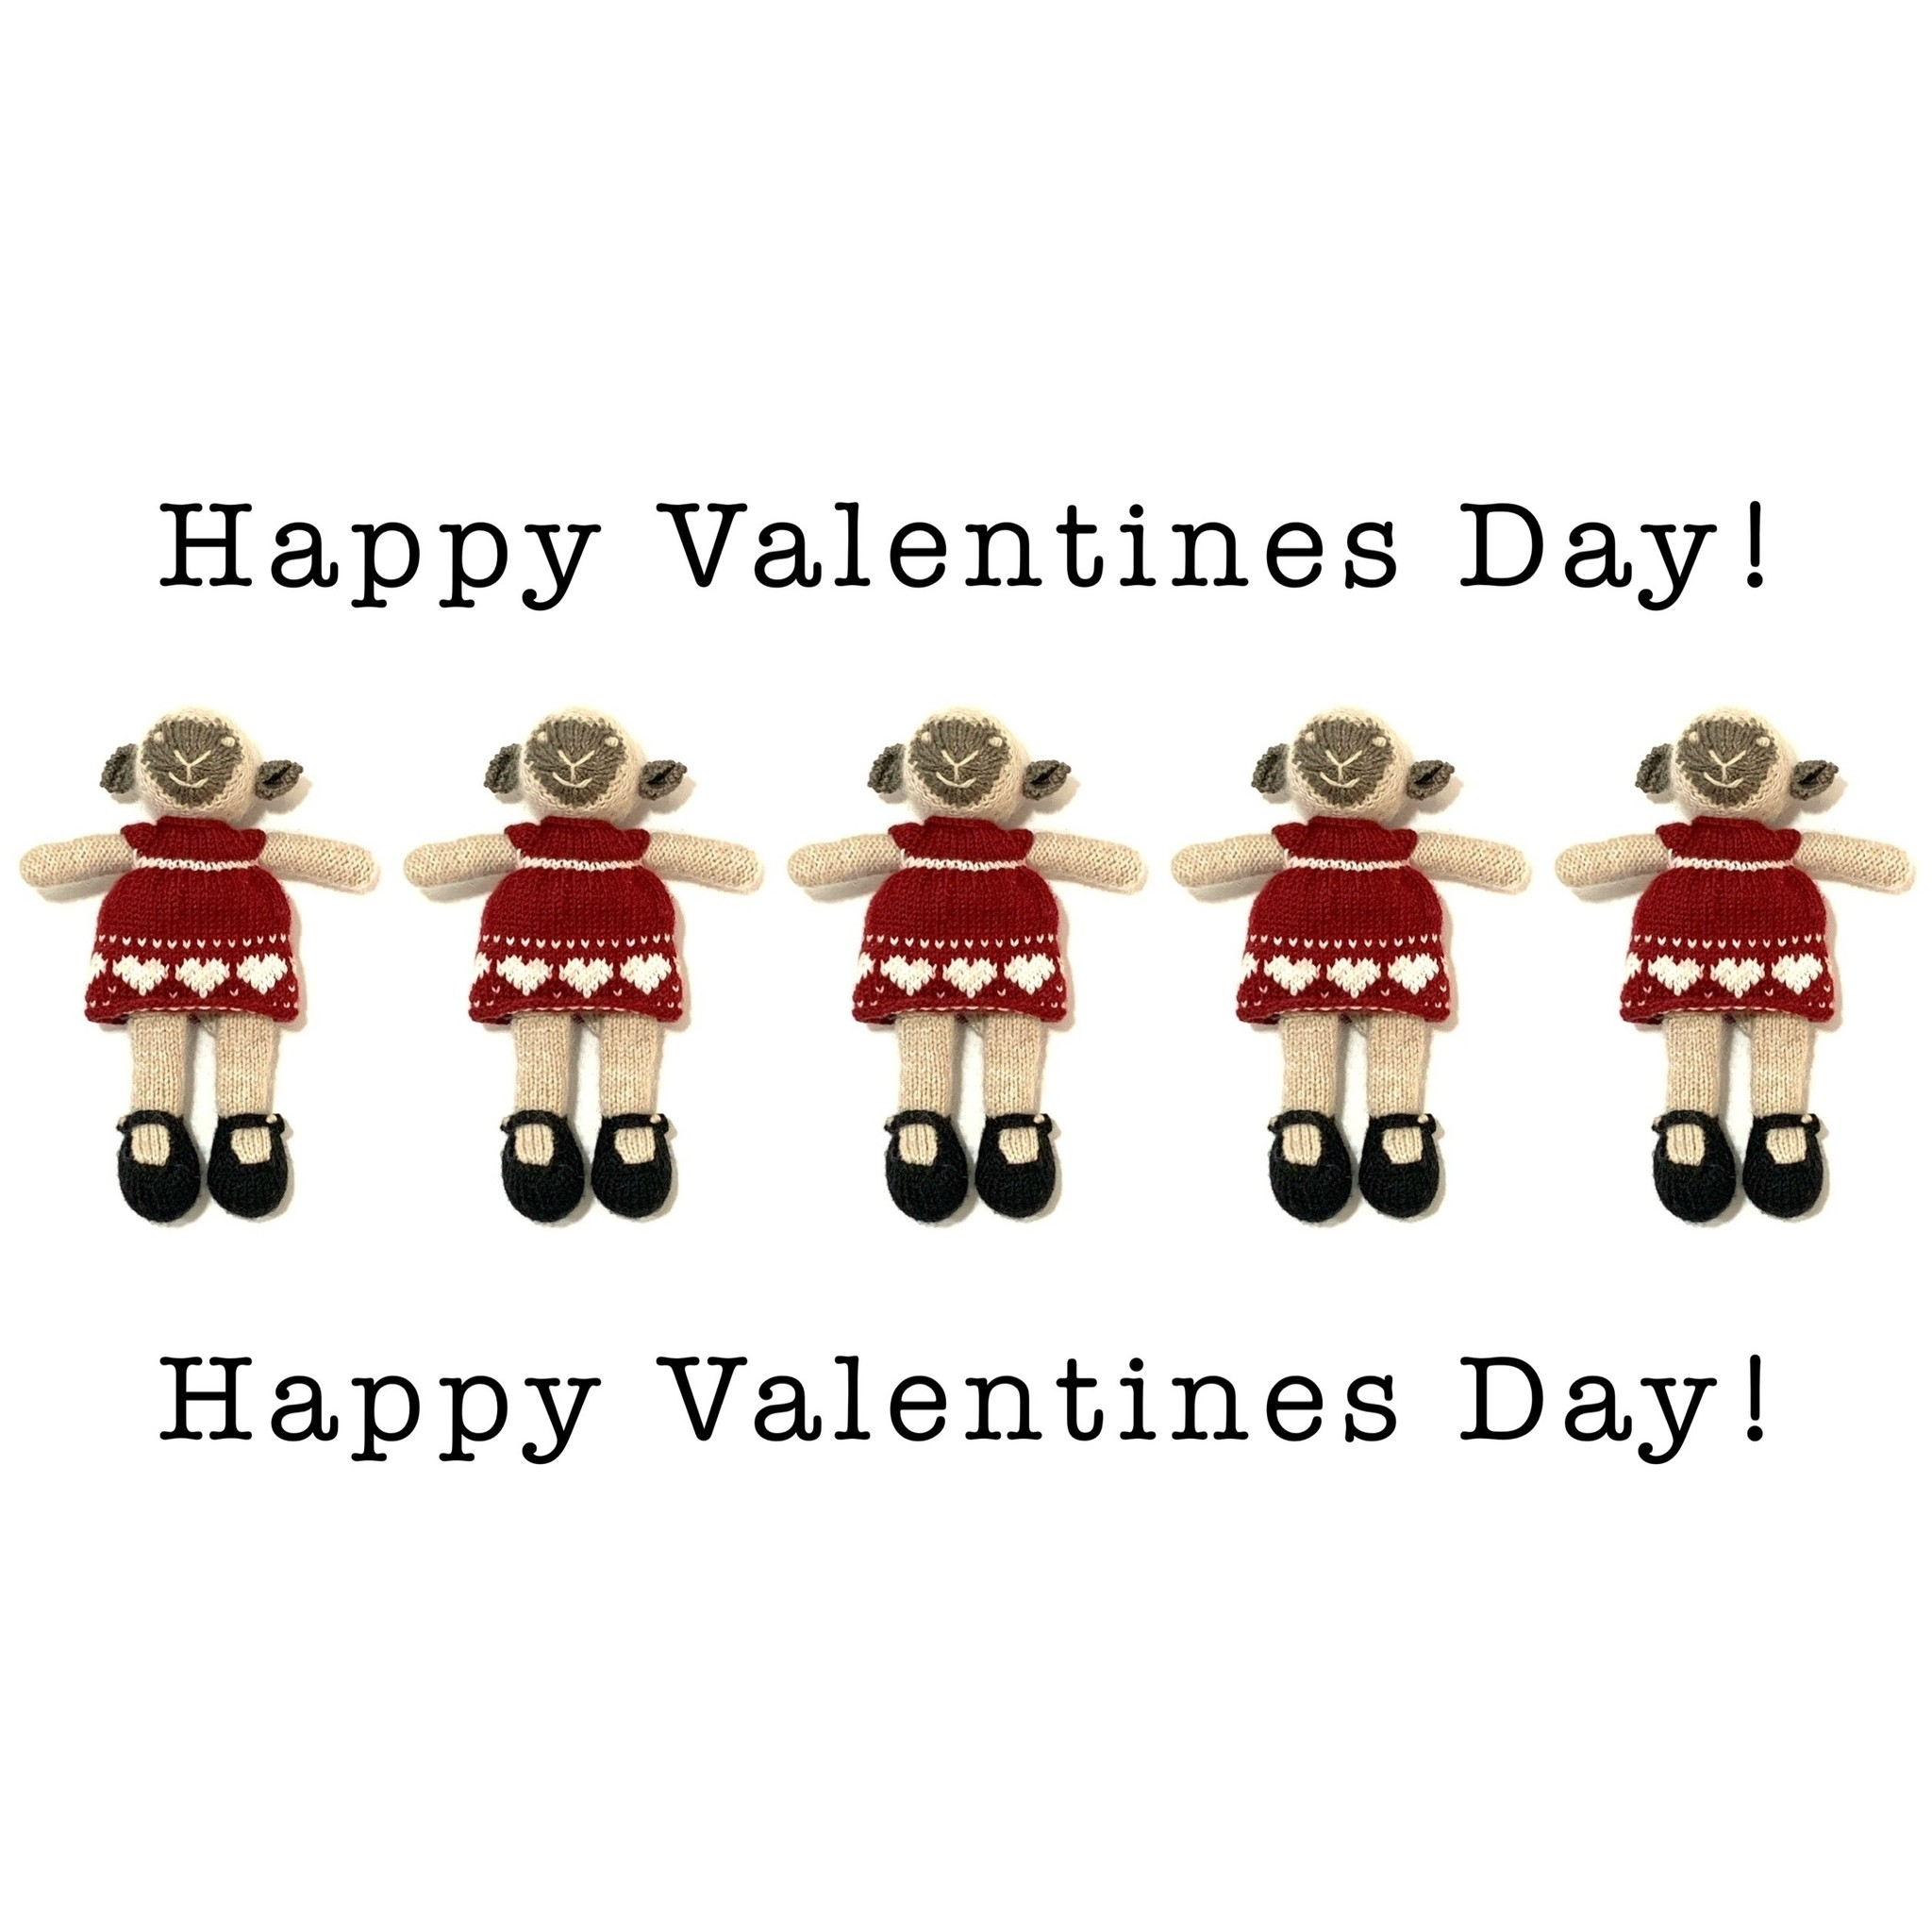 Friday, February 14, 2020, Issue 134: Happy Valentines Day!